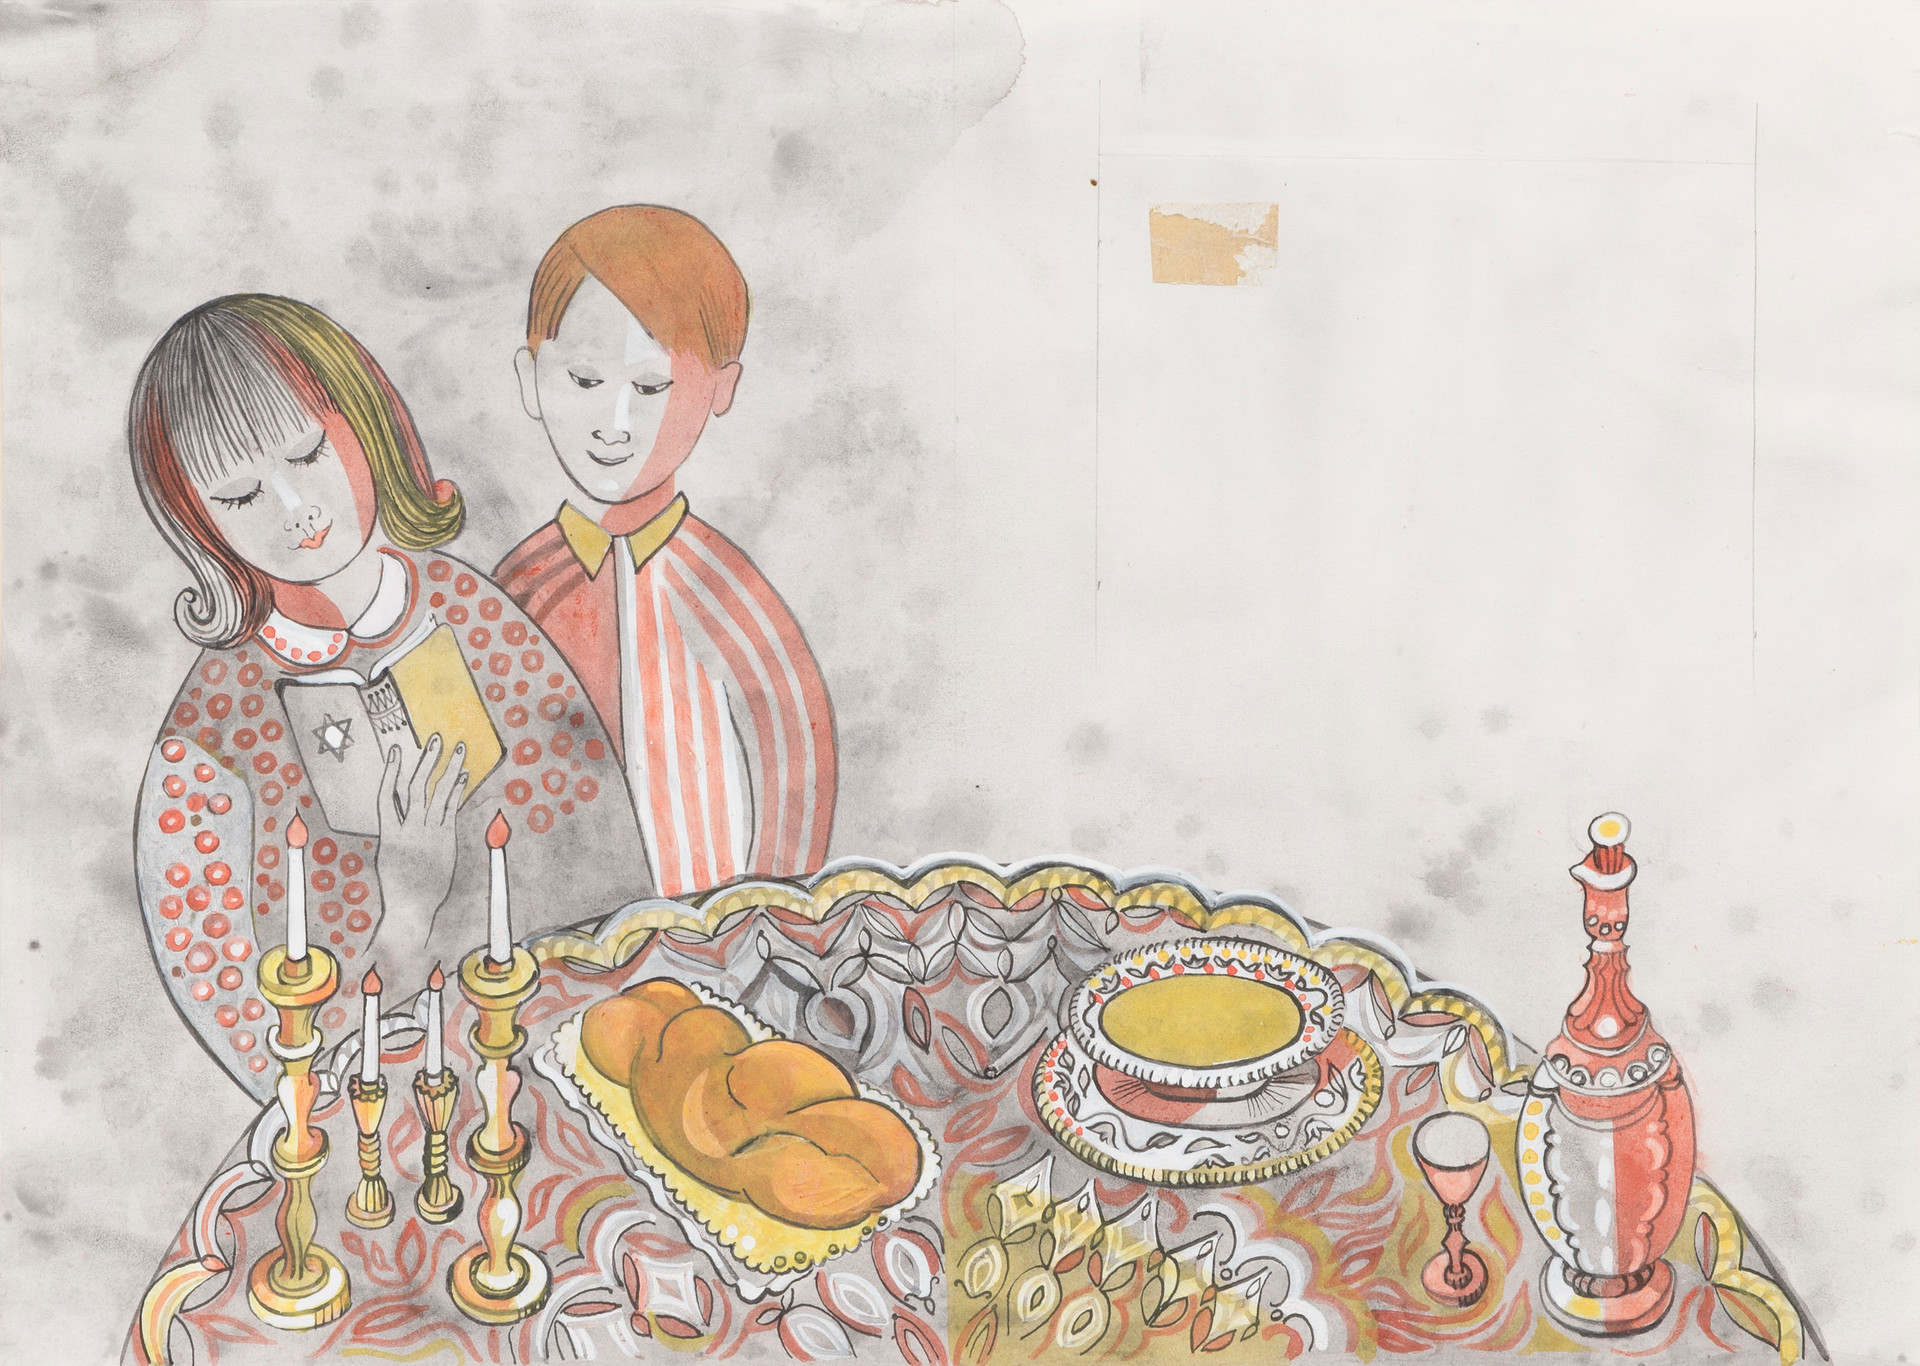 Untitled illustration P6, P7 (boy and girl at Sabbath table with prayer book)